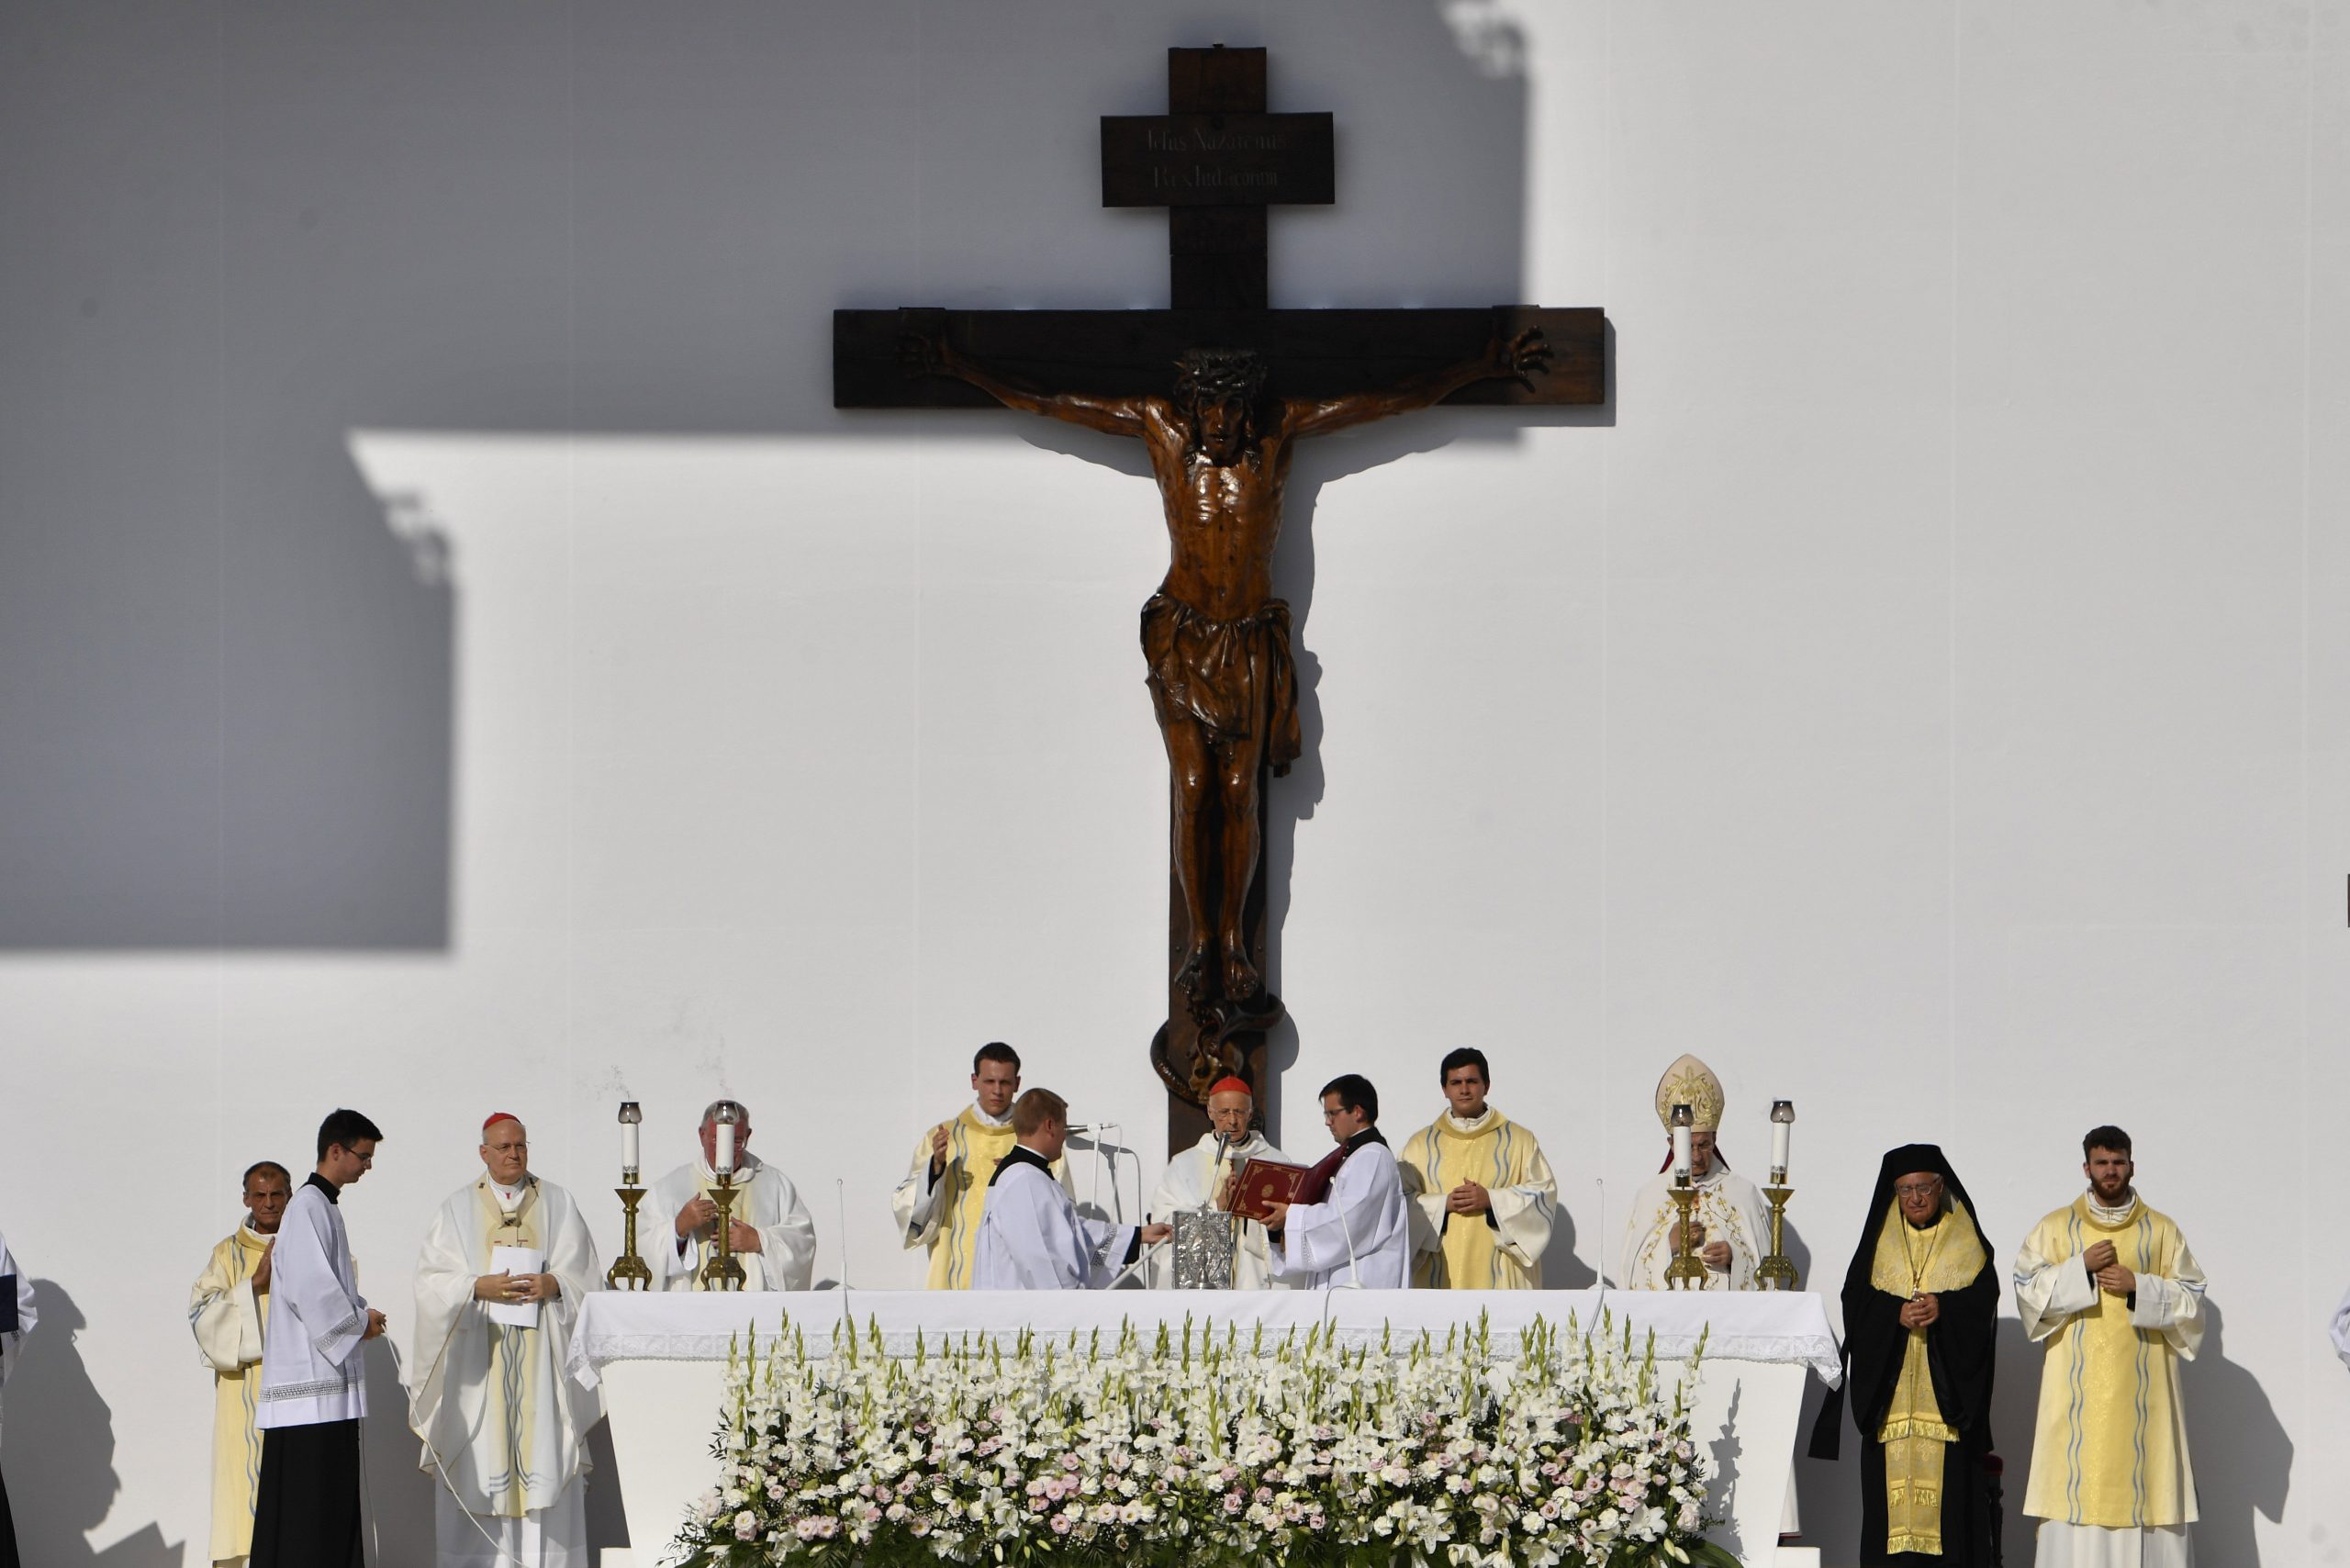 'The Eucharist is the source for the life and mission of Christians,' Cardinal Erdő at Opening Mass of 52nd International Eucharistic Congress